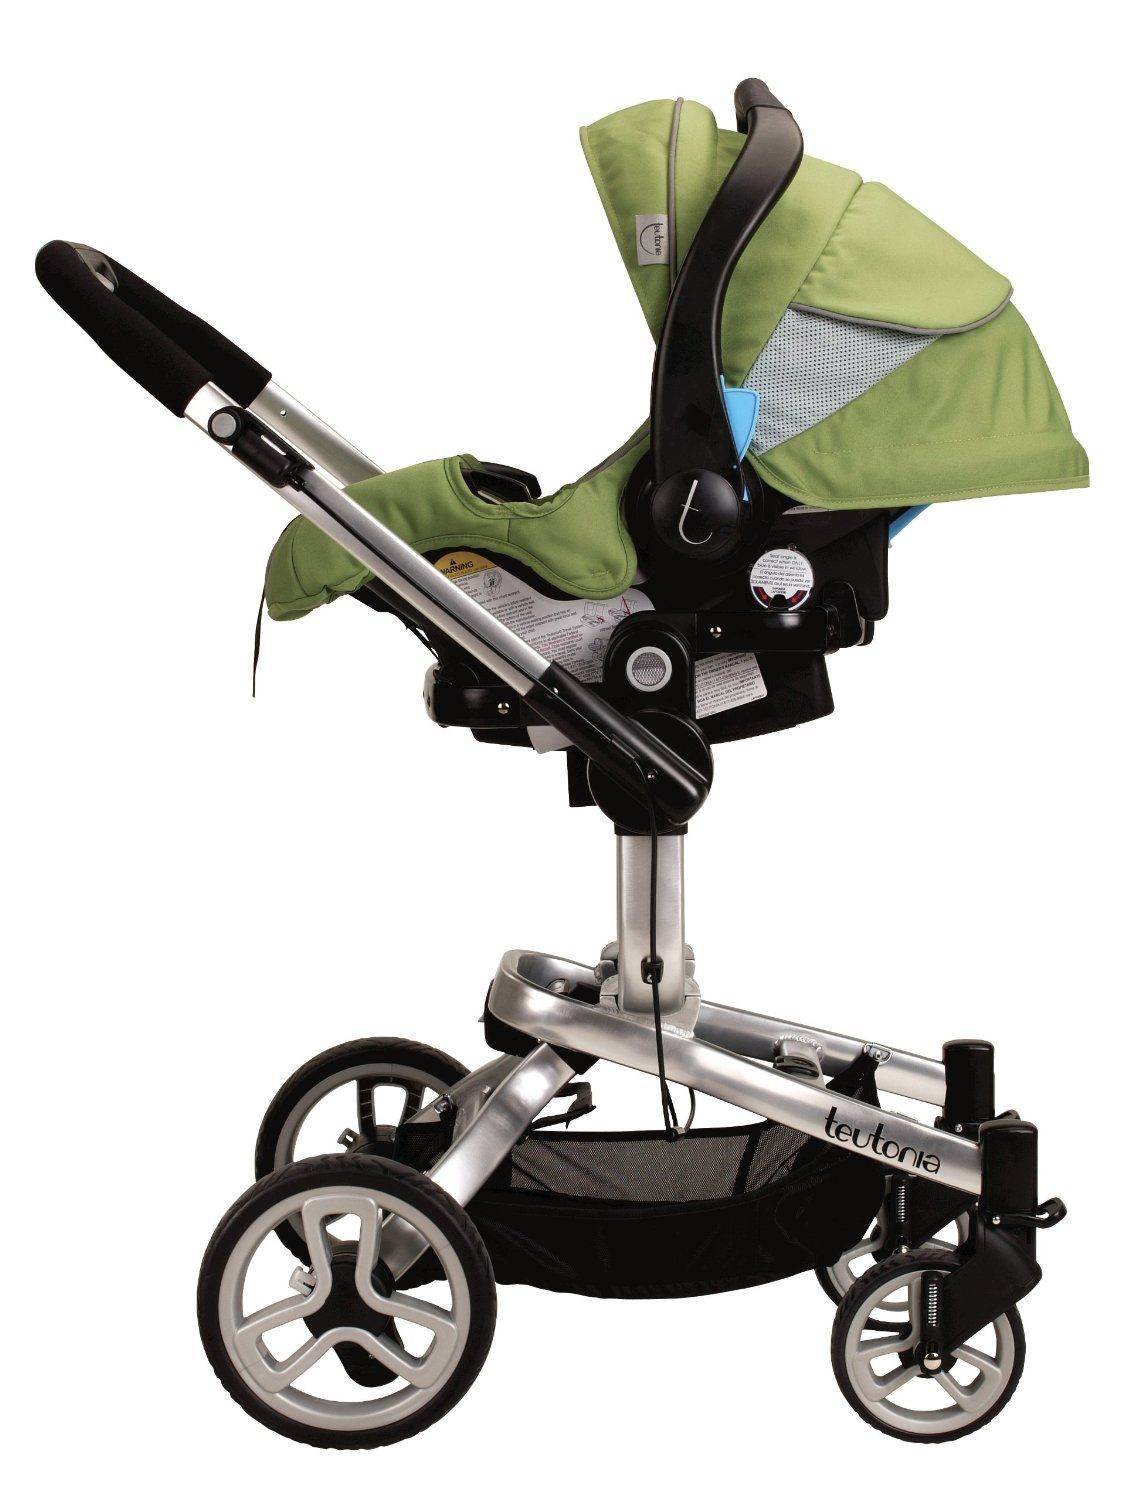 14+ Car seat and stroller combination ideas